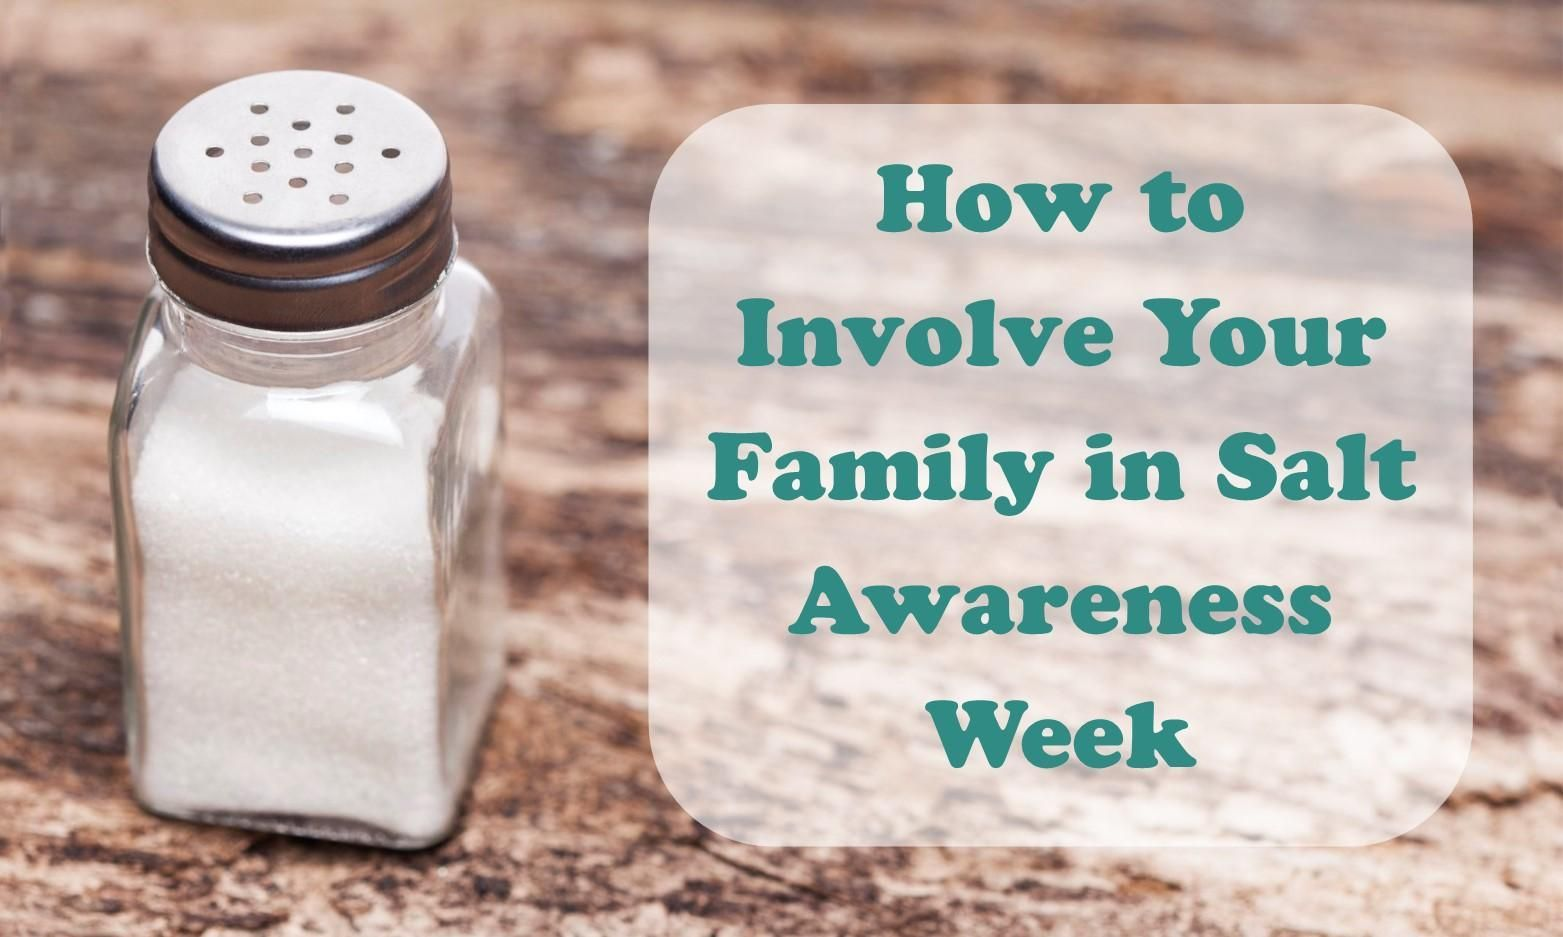 How to Involve Your Family in Salt Awareness Week